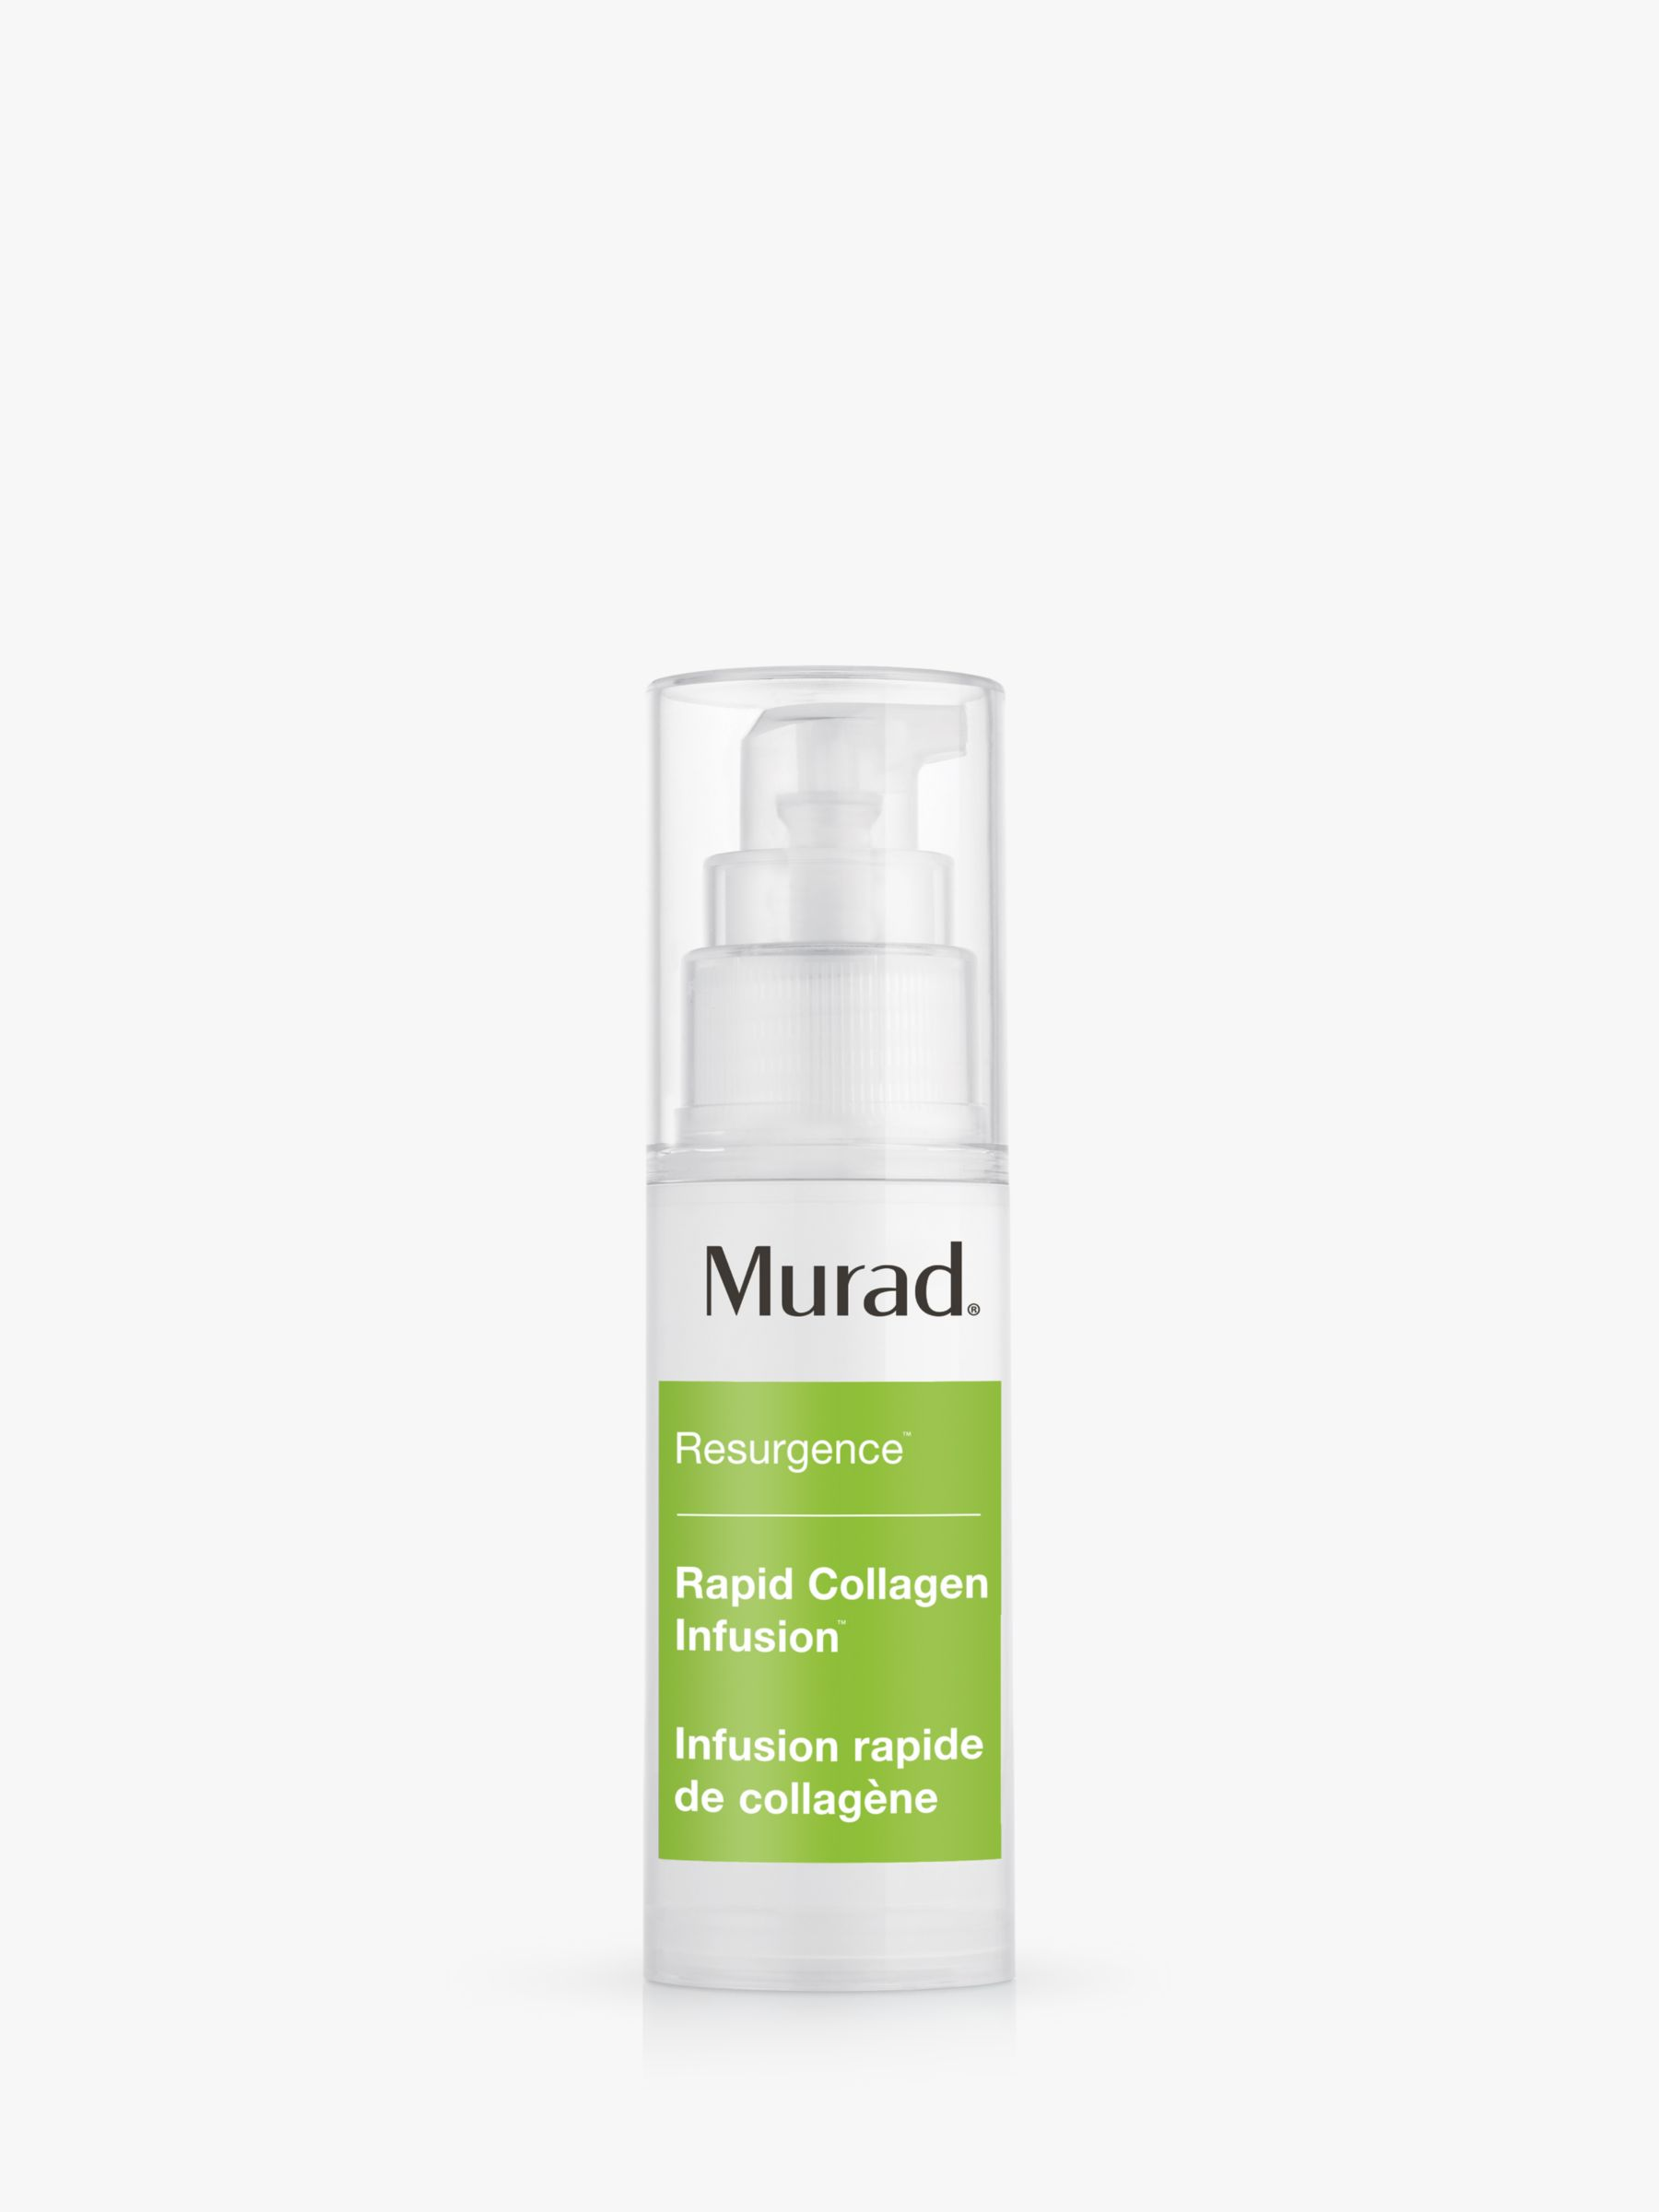 Murad Murad Resurgence Rapid Collagen Infusion, 30ml